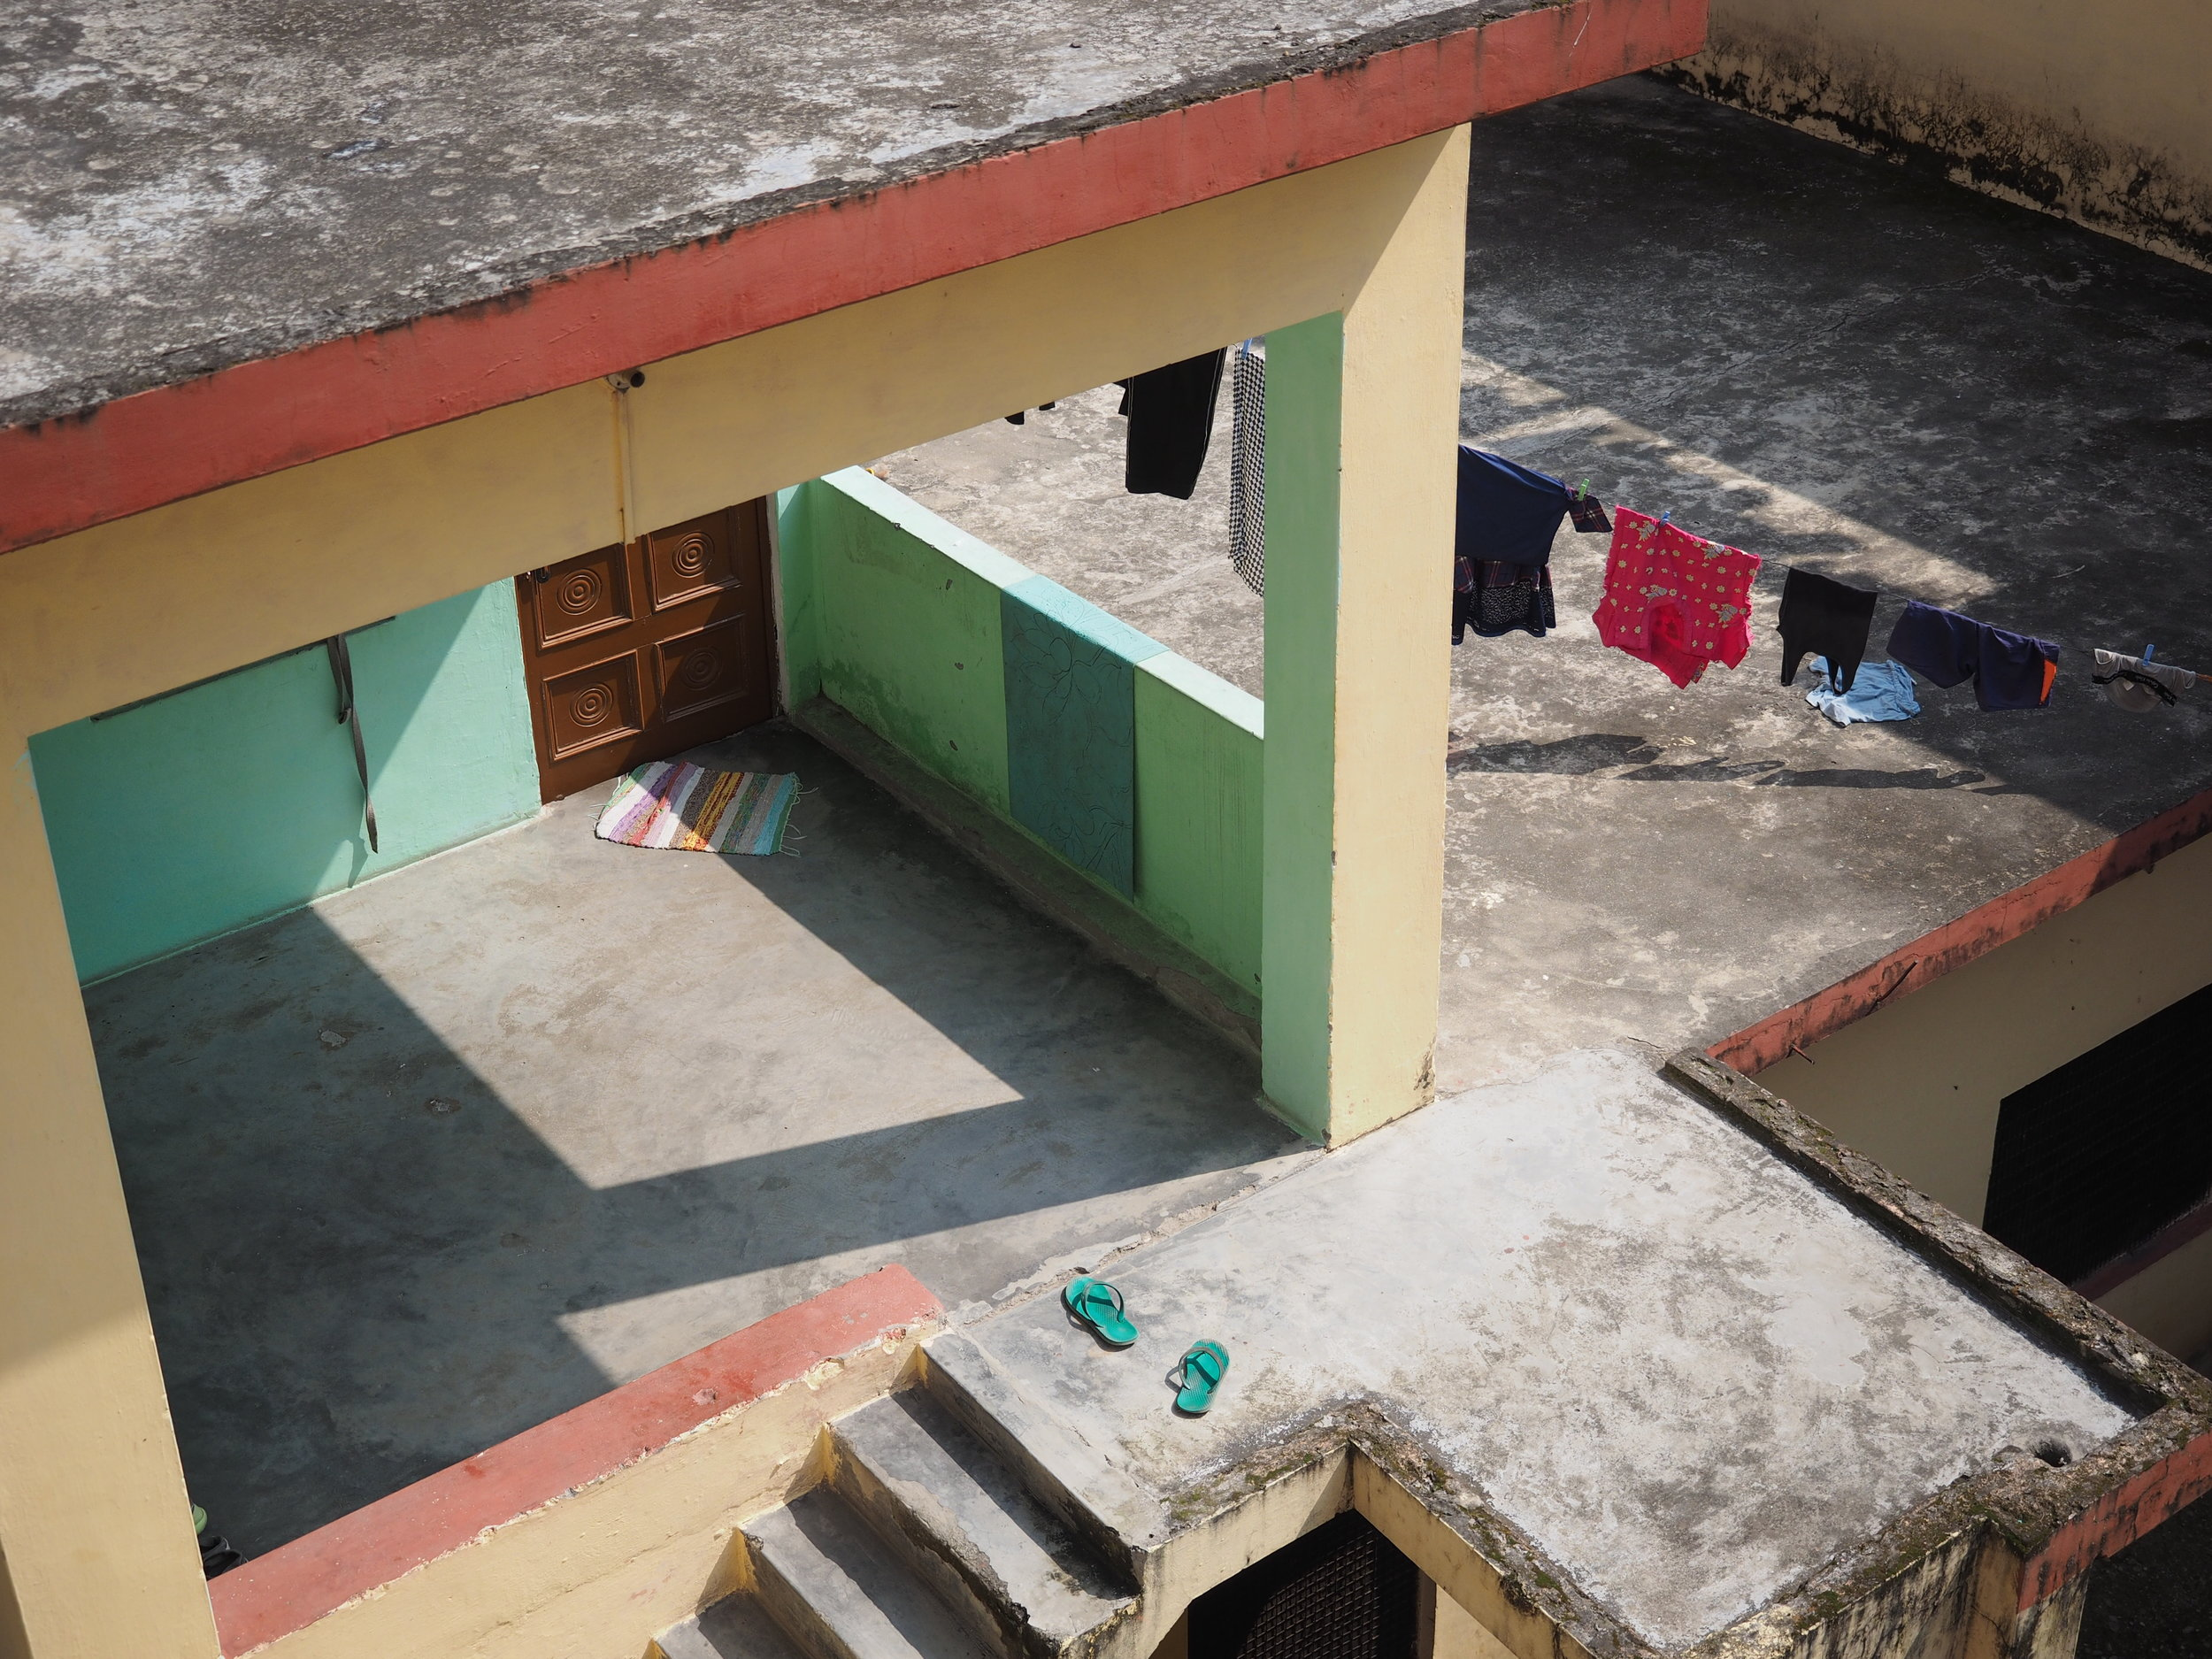 This was the view from my balcony and the home of one of my teachers. Looks a bit M.C. Escher to me.